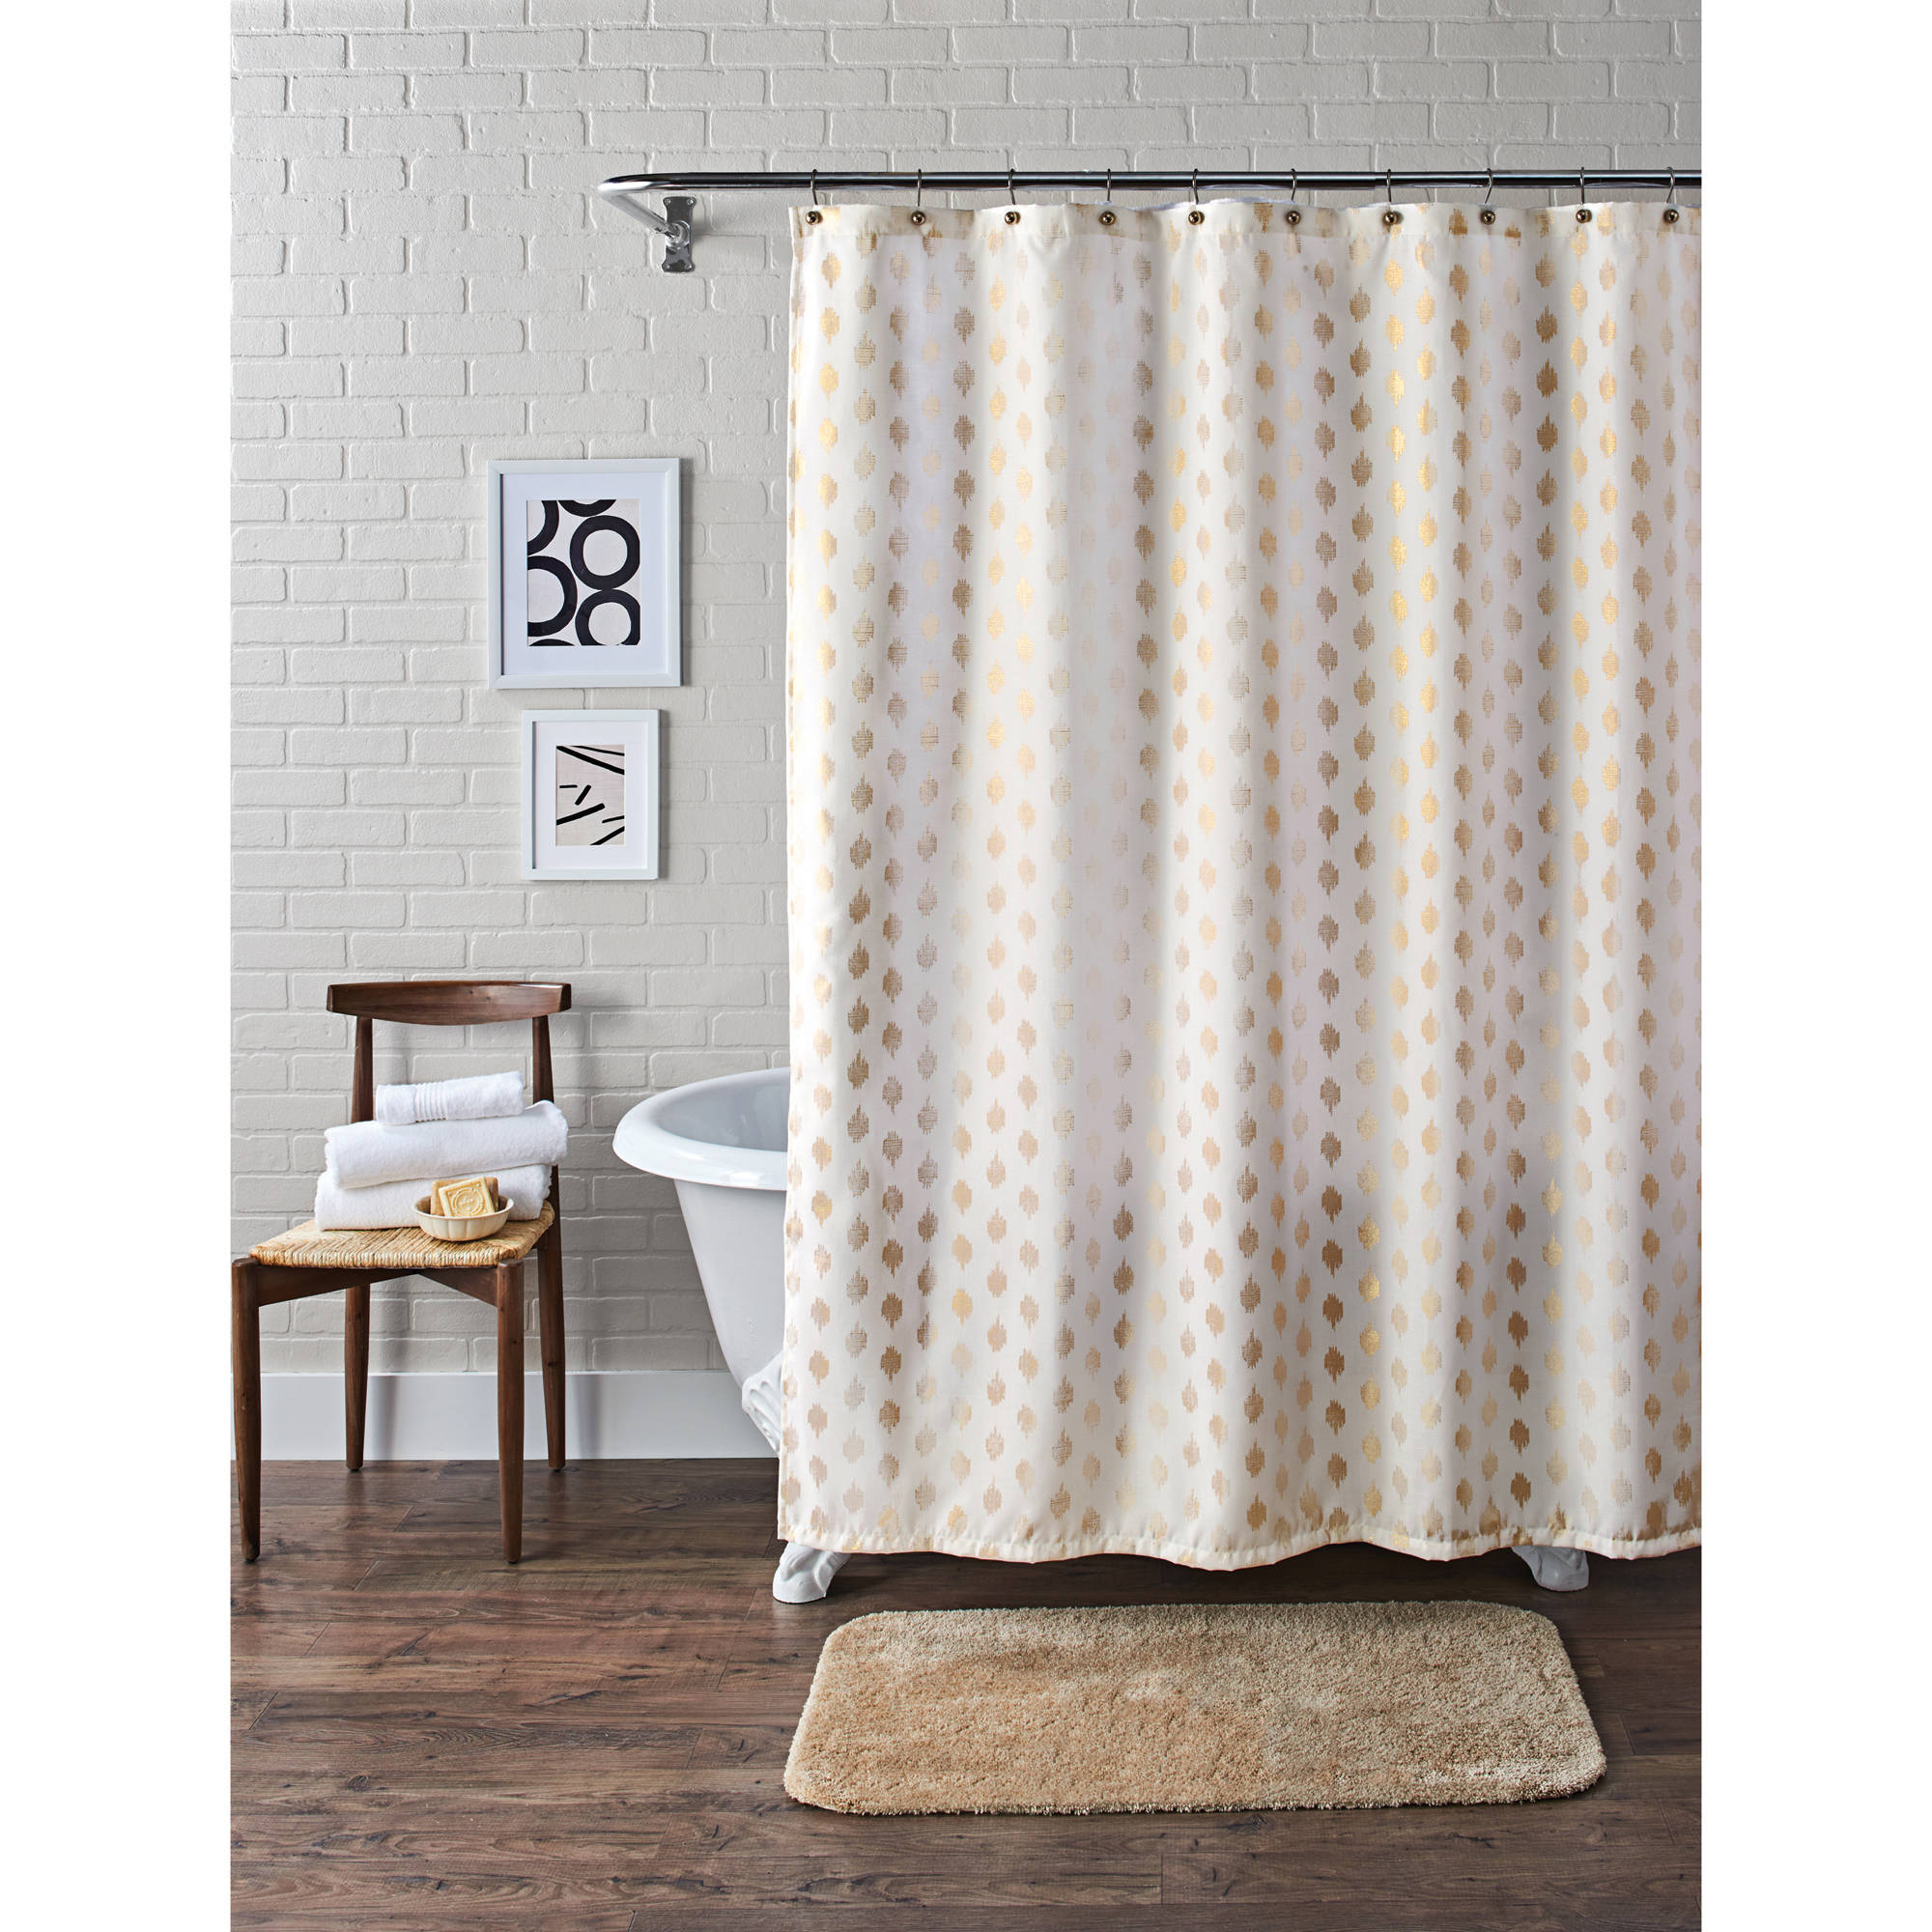 Better Homes and Gardens Metallic Ikat Dou Fabric Shower Curtain